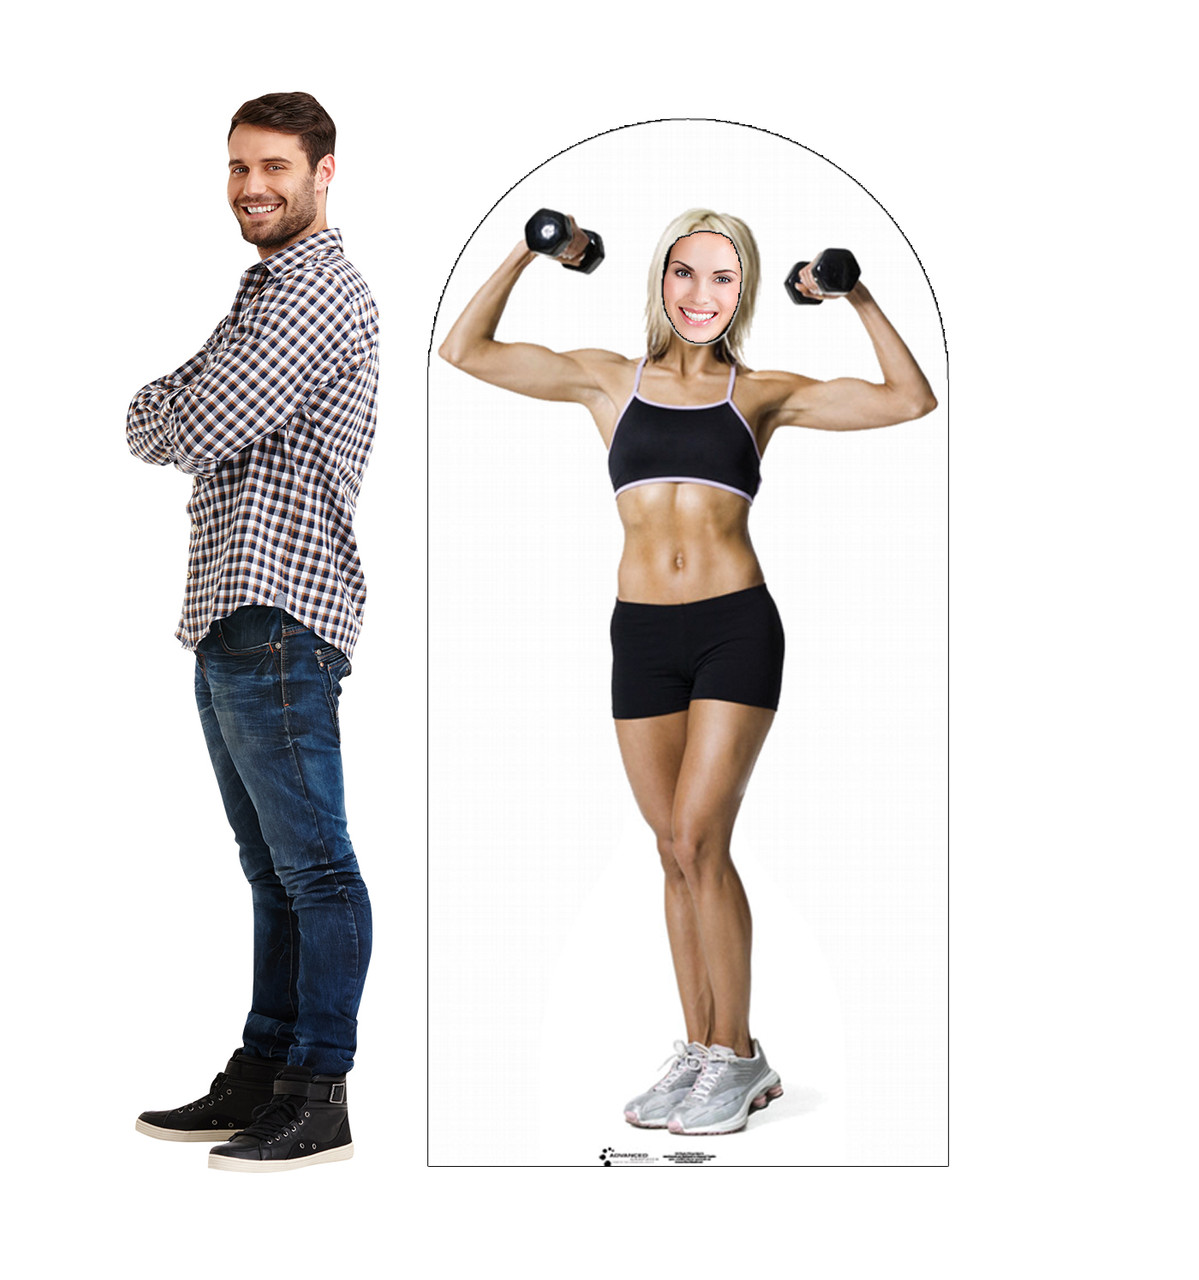 Life-size cardboard stand-in of a muscle women with model.